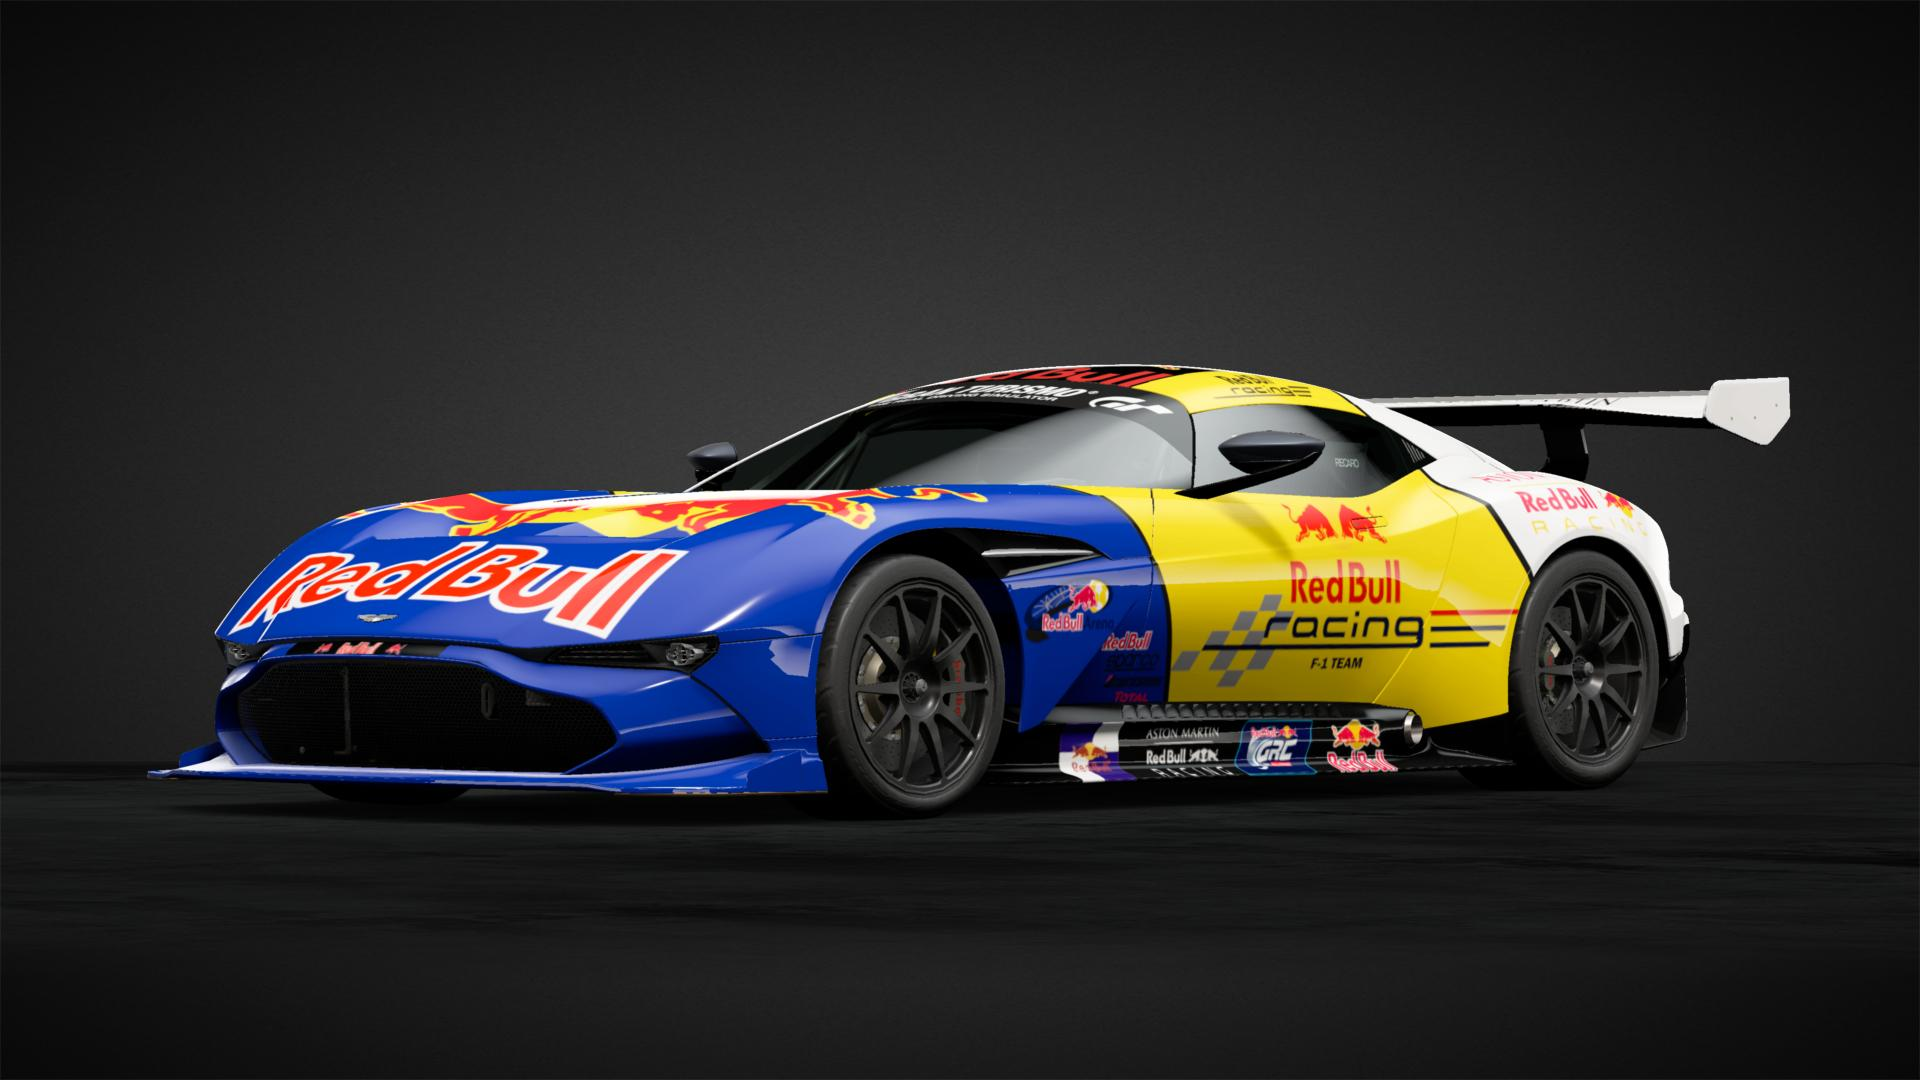 ASTON MARTIN RED BULL - Car Livery by Hophield123776